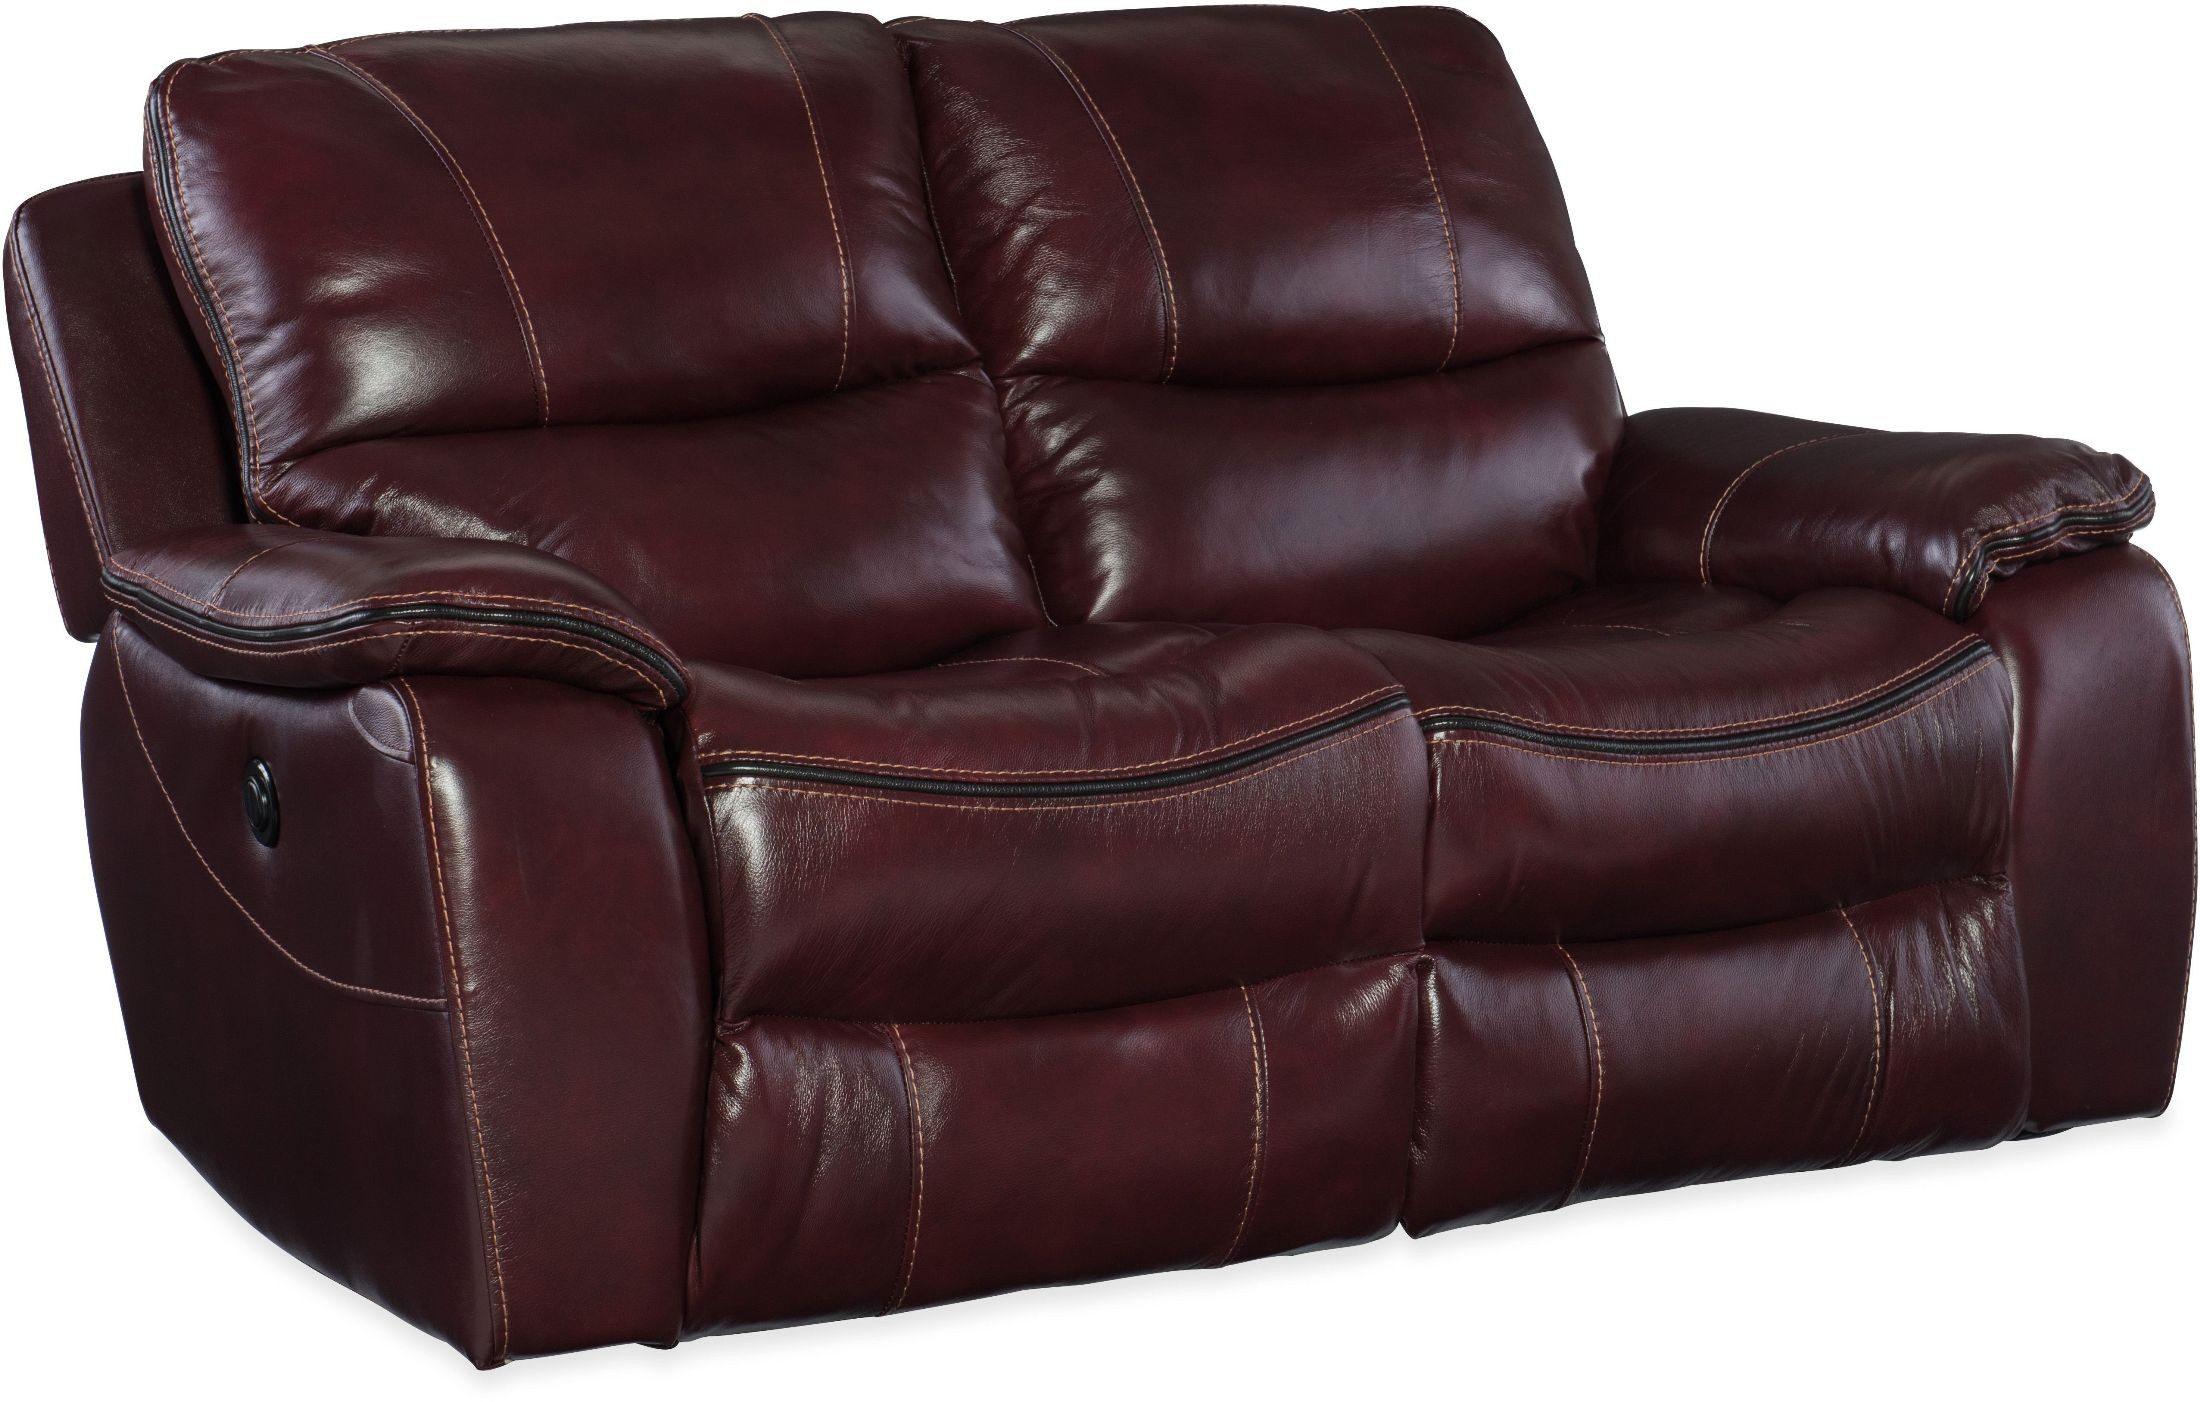 Gregory Red Power Reclining Loveseat Ss624 P2 069 Hooker Furniture